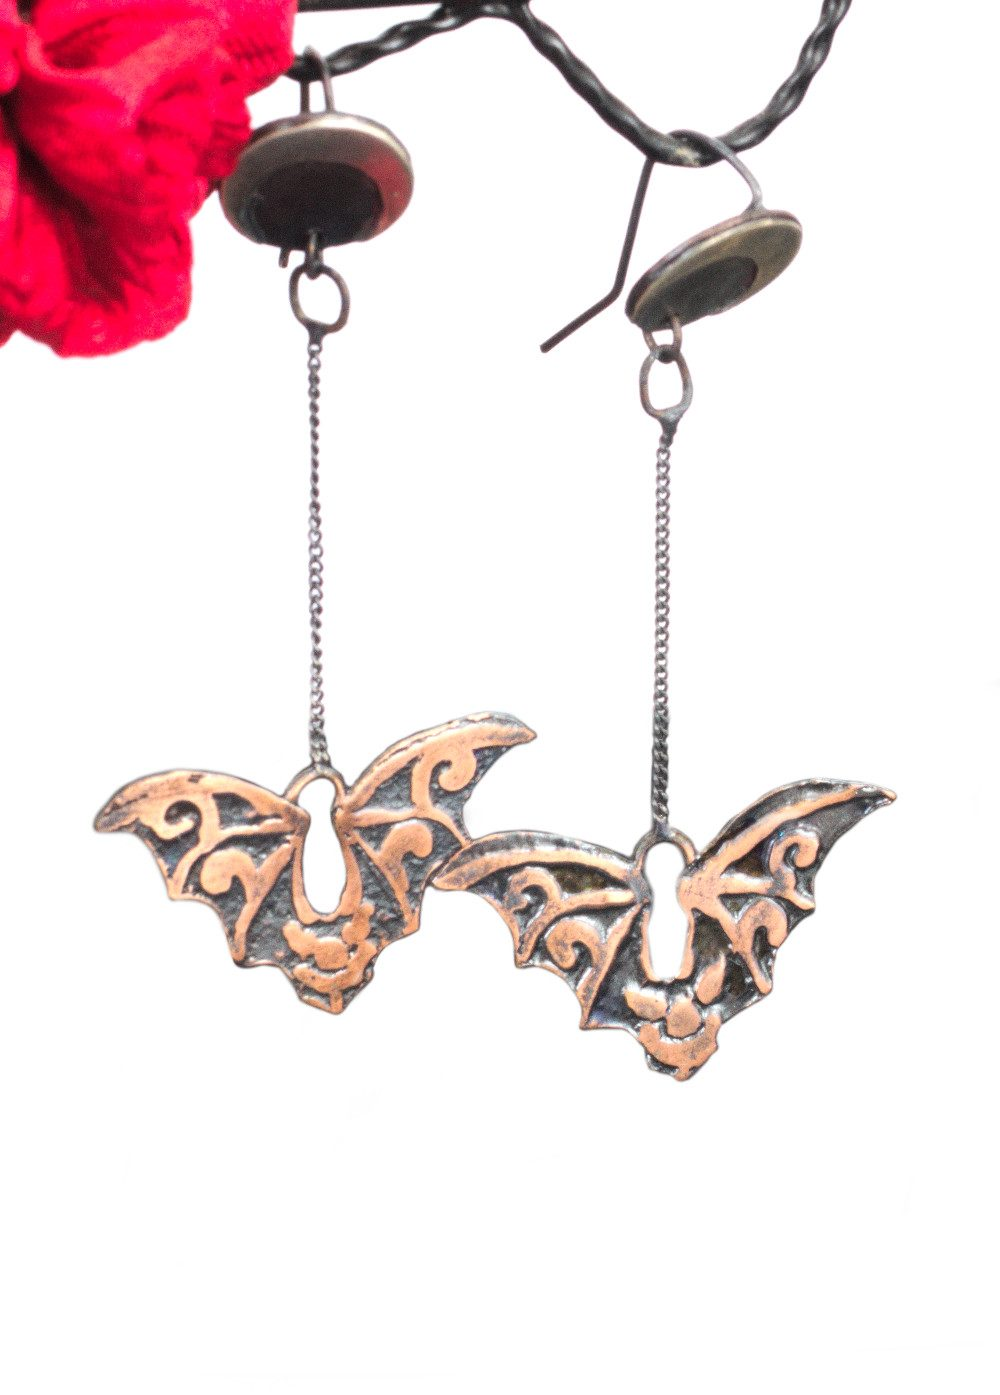 Copper and silver flying bat earrings